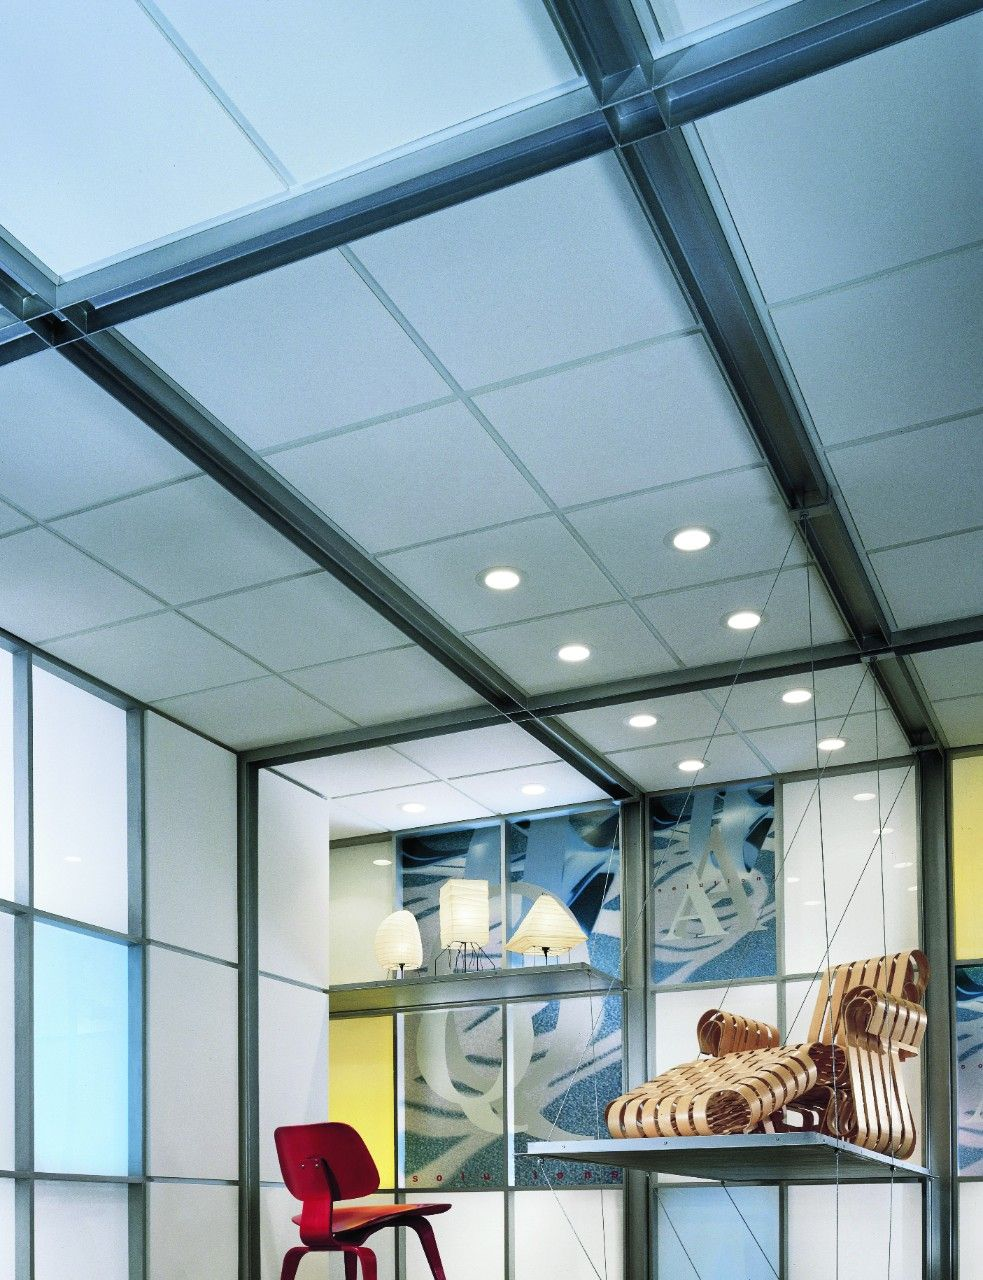 Mars climaplus high nrc acoustical ceiling panels mens restroom ceiling dailygadgetfo Image collections